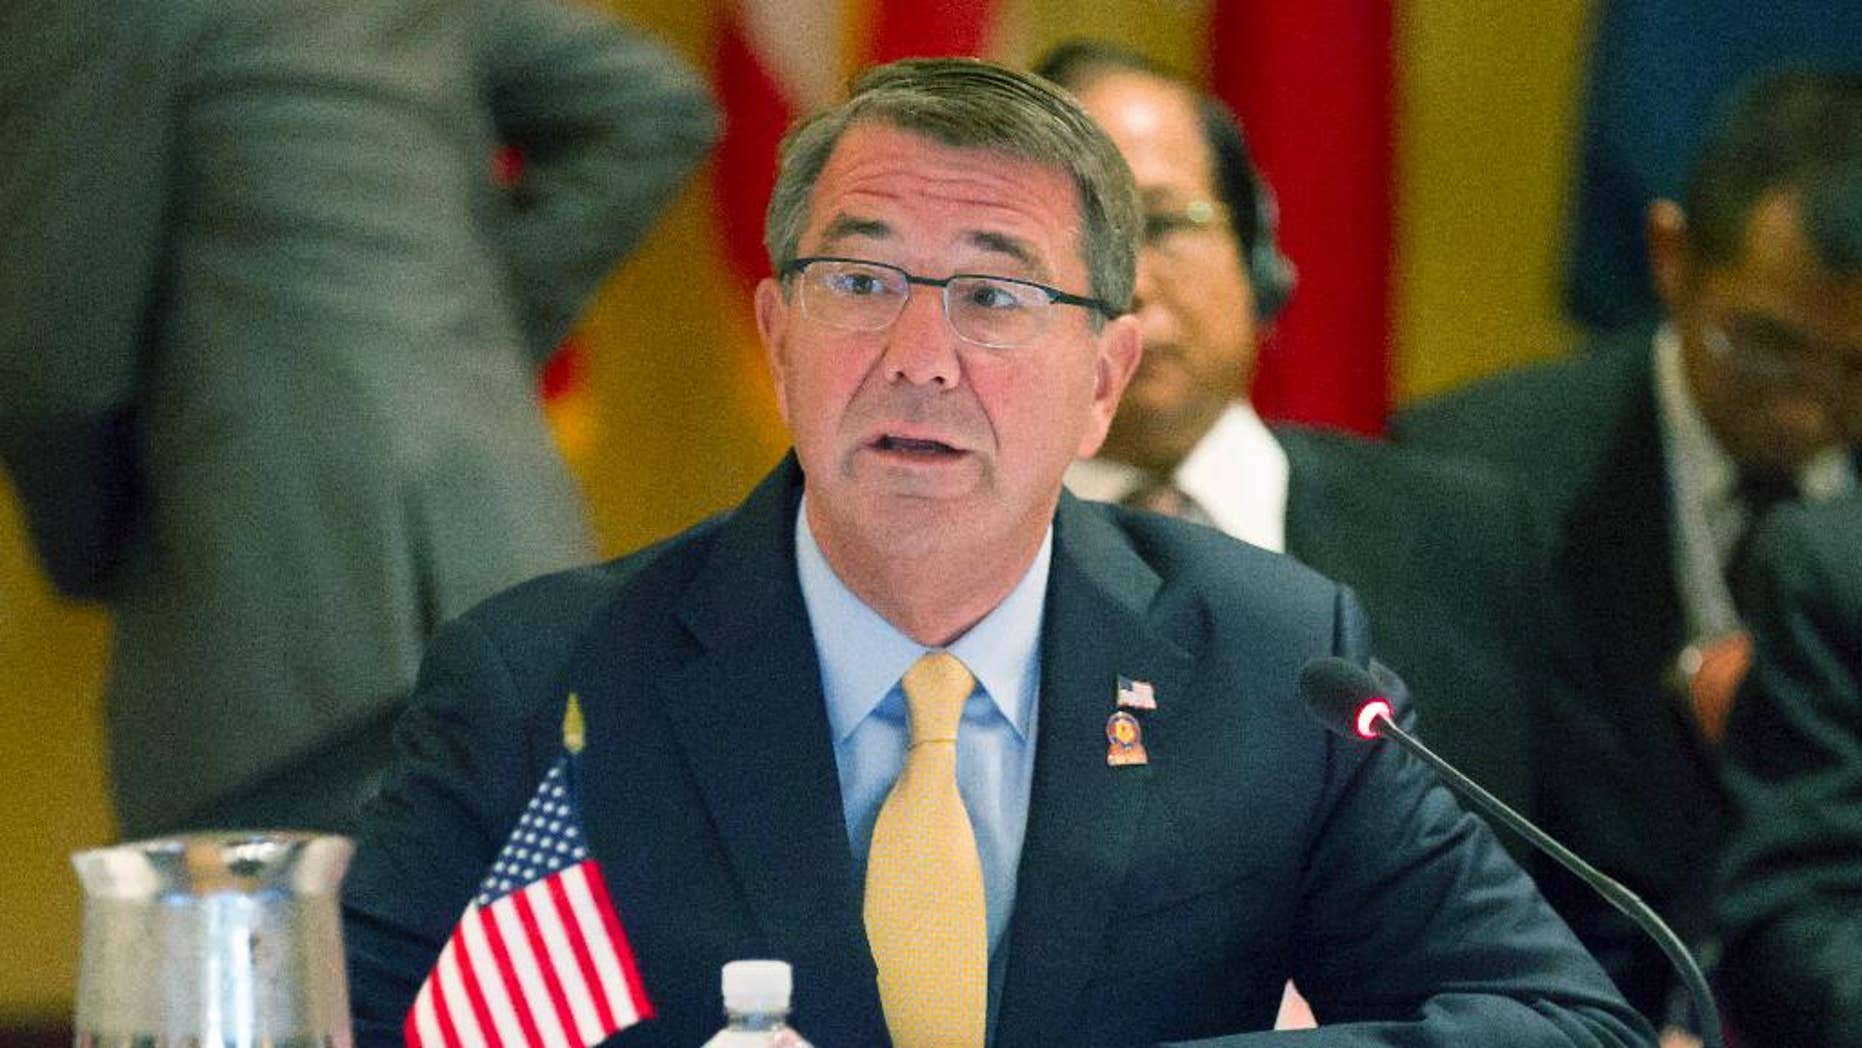 Sept. 30, 2016: U.S. Secretary of Defense Ash Carter gives his opening remarks for the Association of Southeast Asian Nations (ASEAN) defense ministers meeting in Ko Olina, Hawaii.